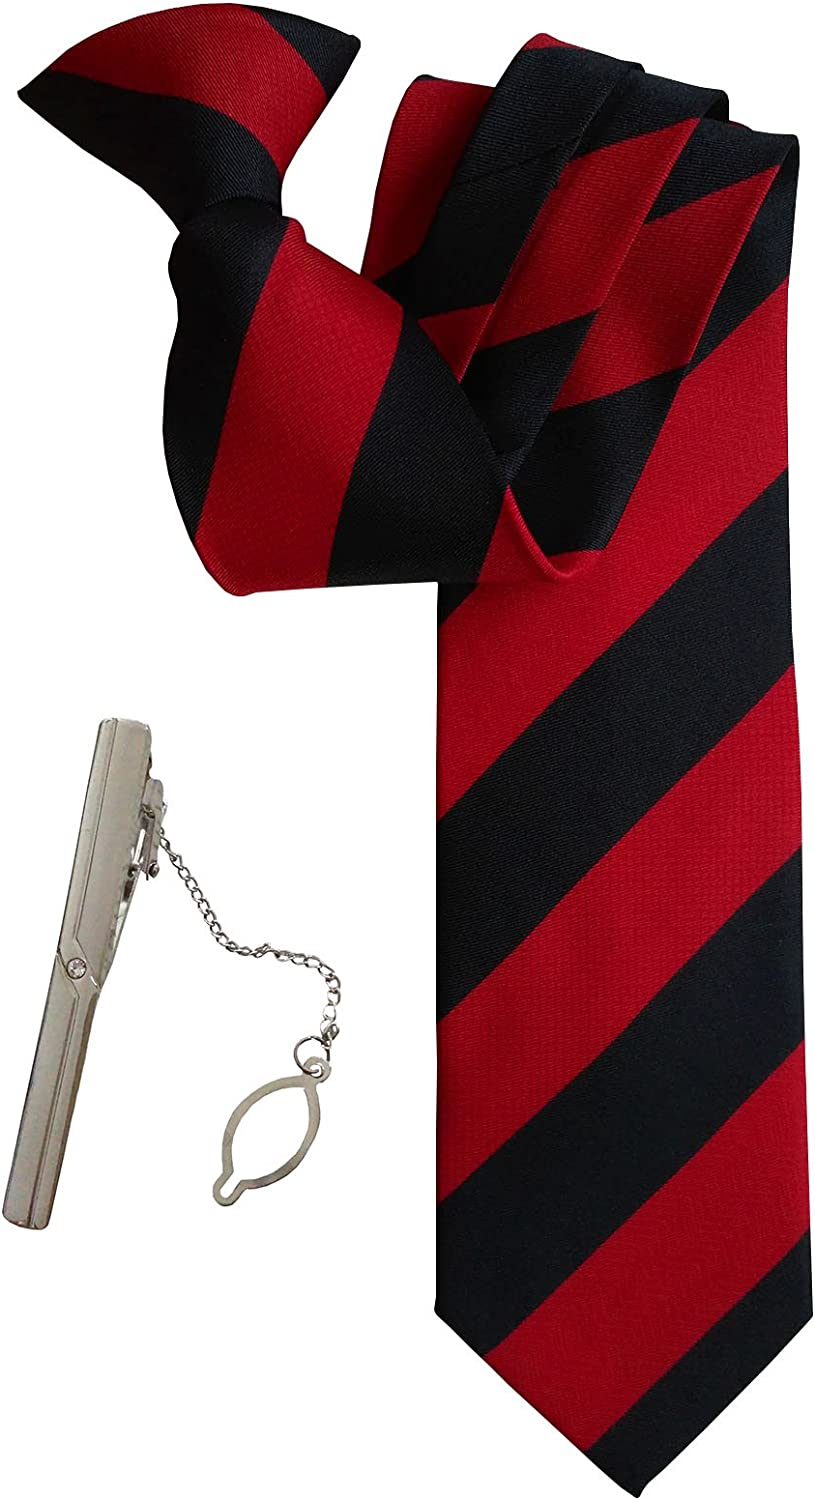 Simpowe Mens Clip Manufacturer regenerated product On Tie 2021new shipping free with